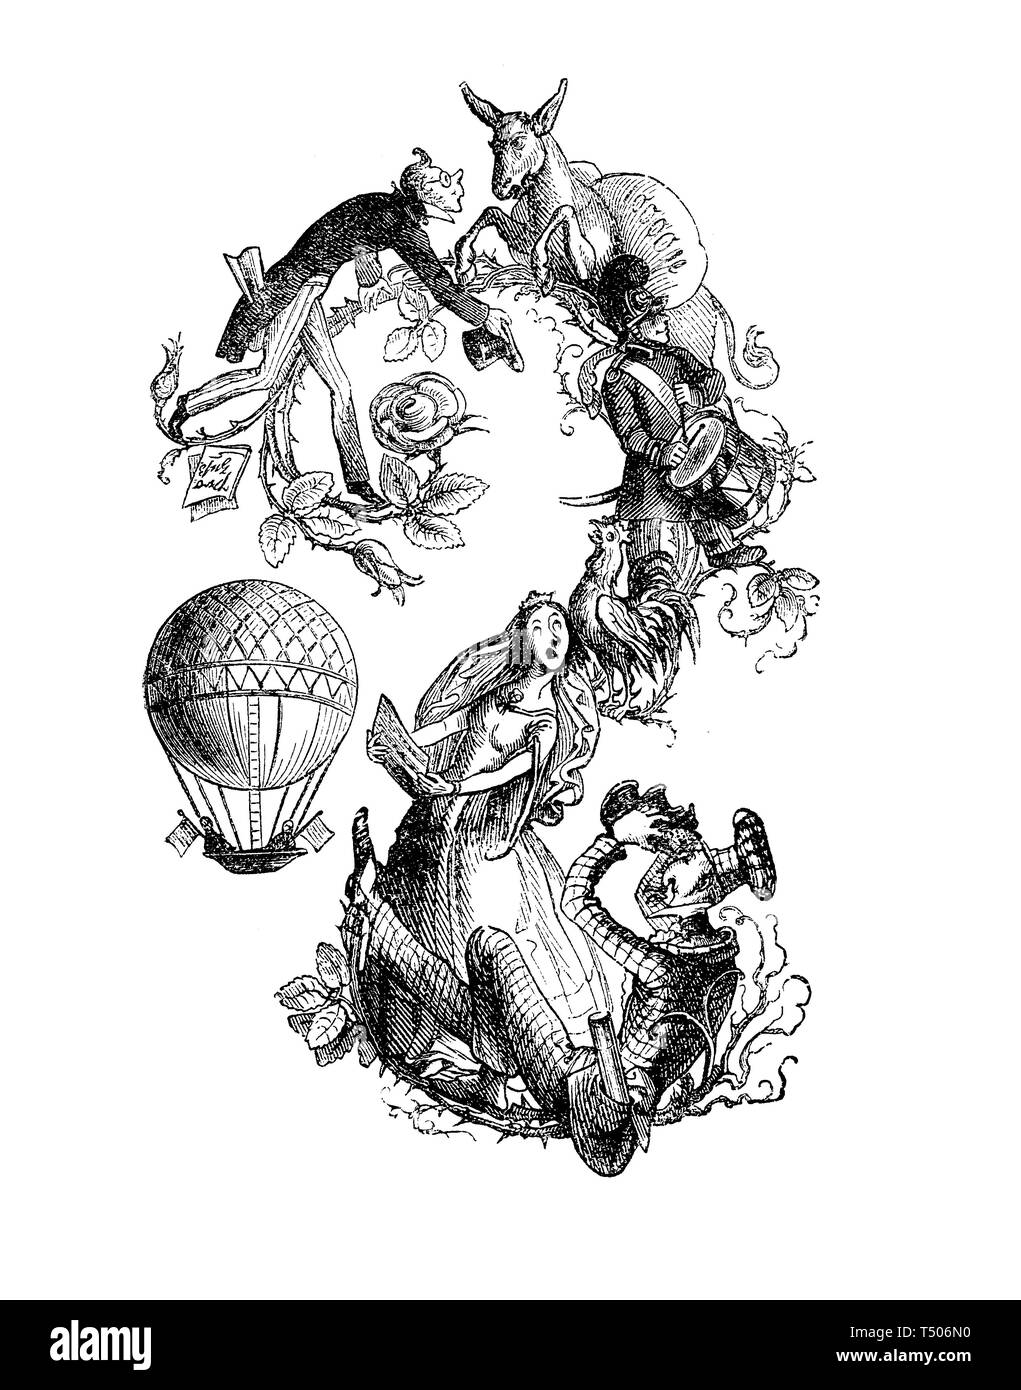 Typographic decoration as frame or border with funny caricatures, animals  and a hot-air balloon - Stock Image